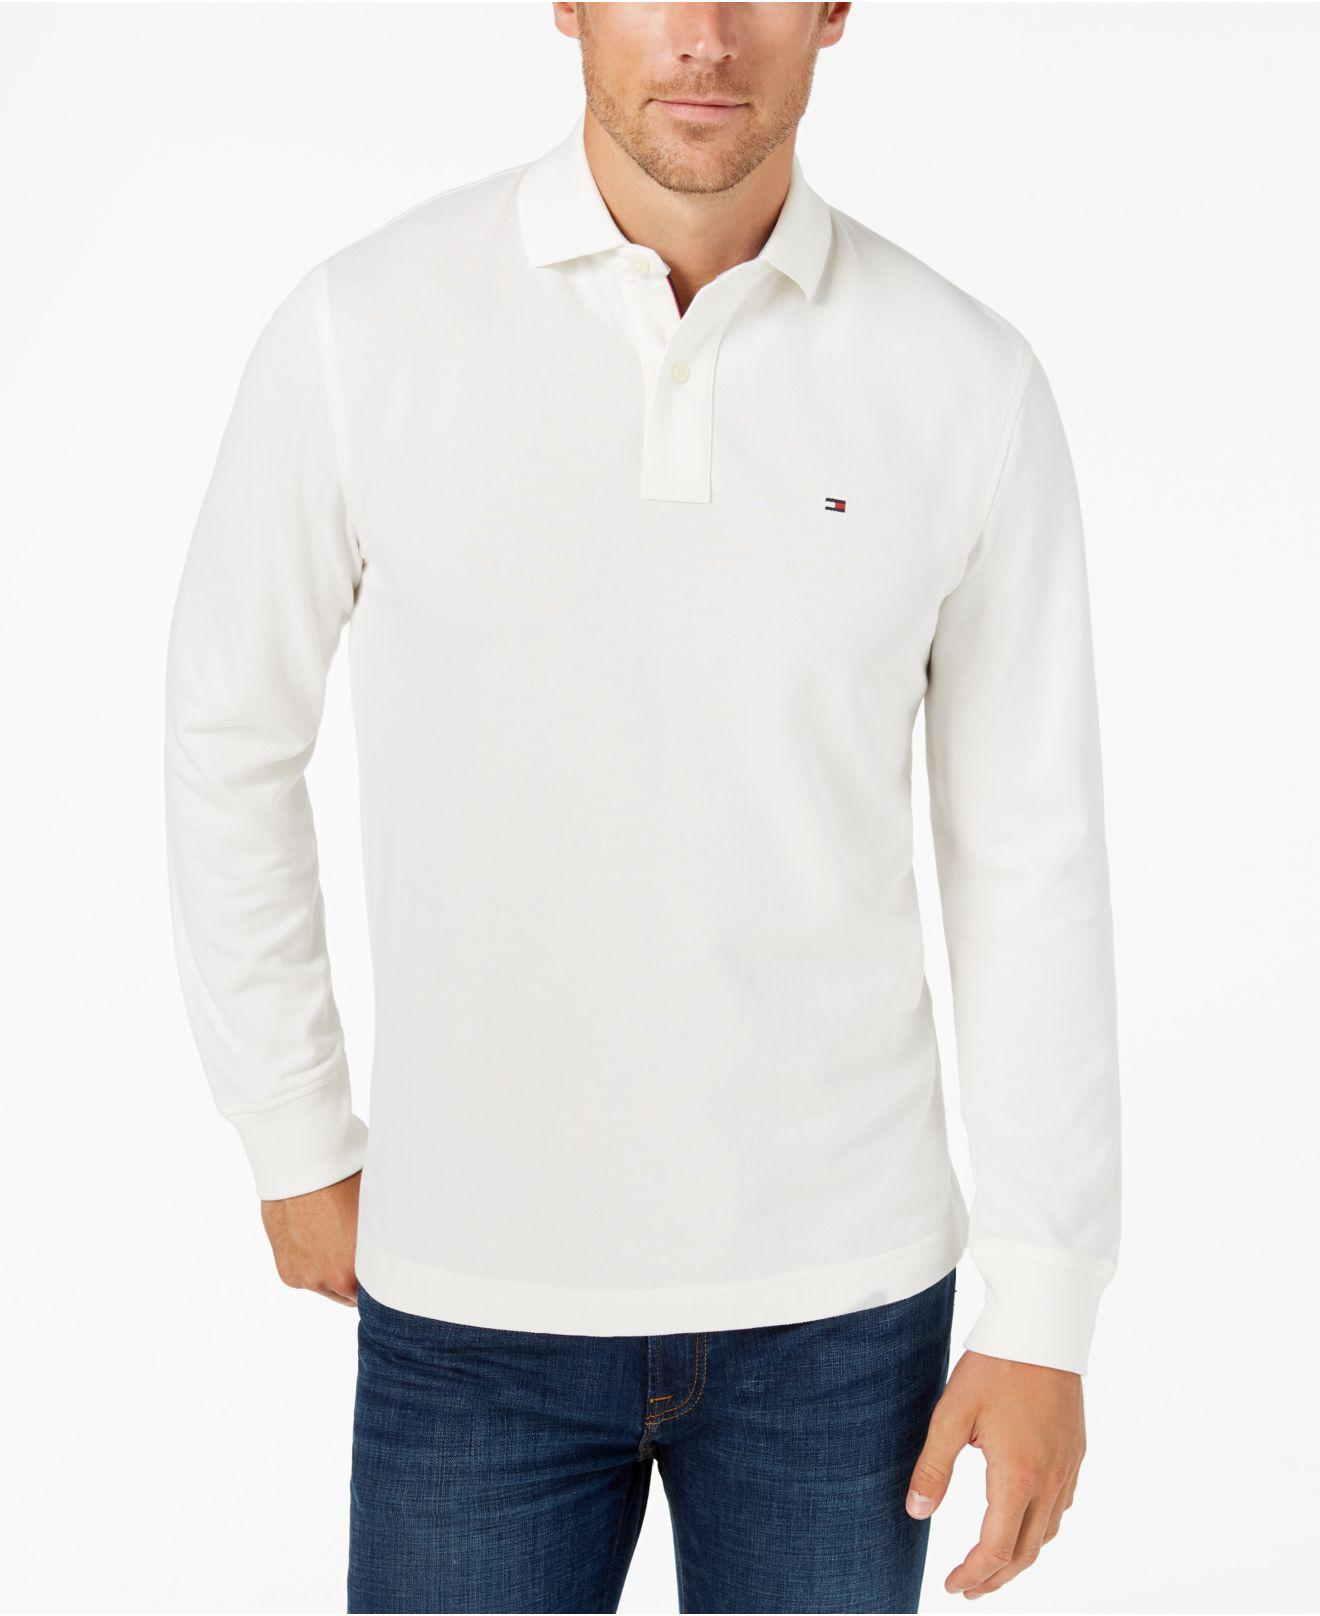 bd0868e93a2590 Lyst - Tommy Hilfiger Classic Fit Long Sleeve Polo Shirt